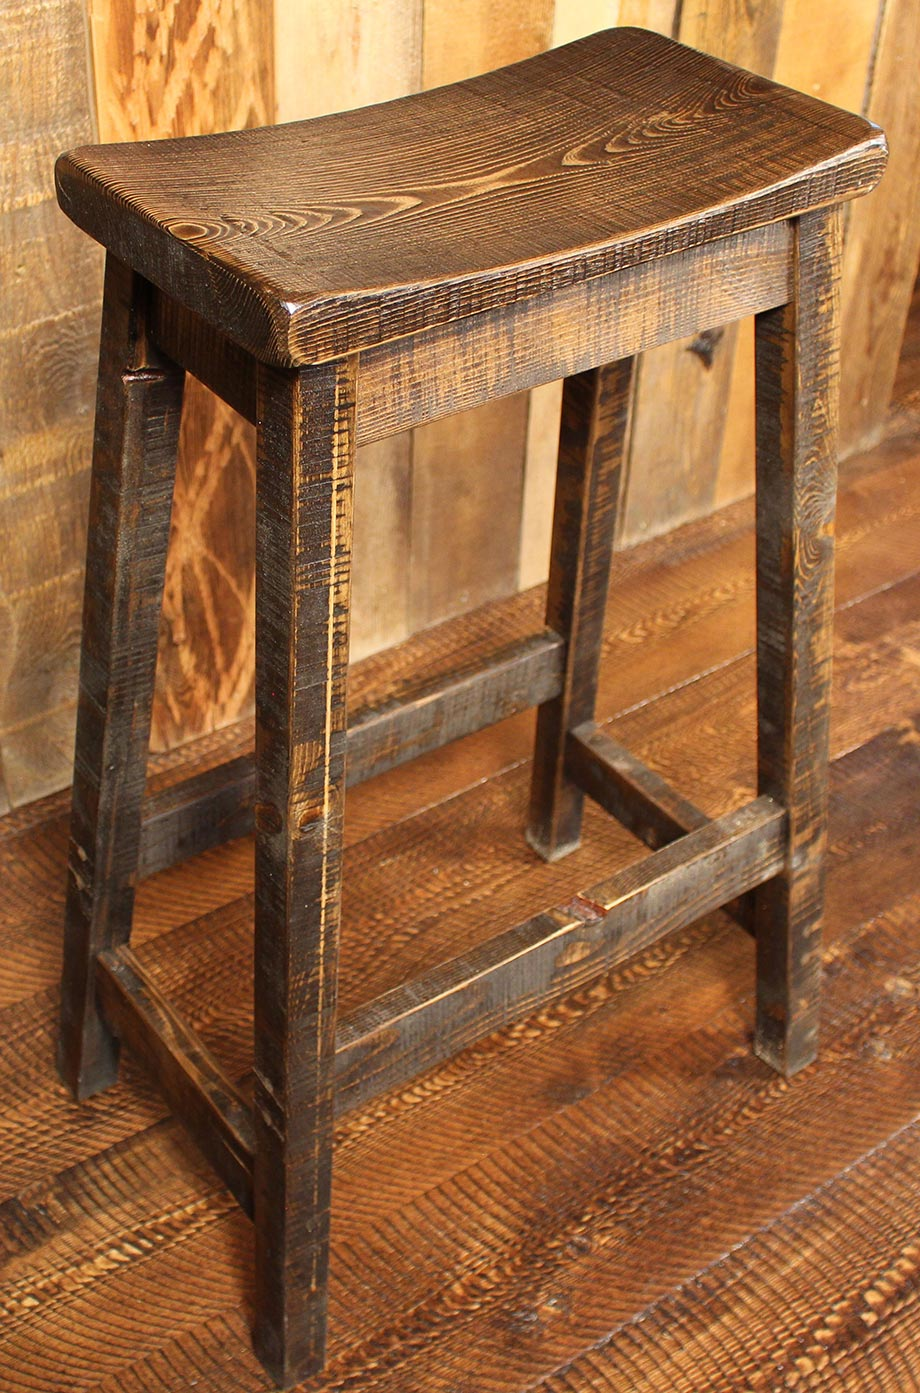 Saddle seat rustic bar stools